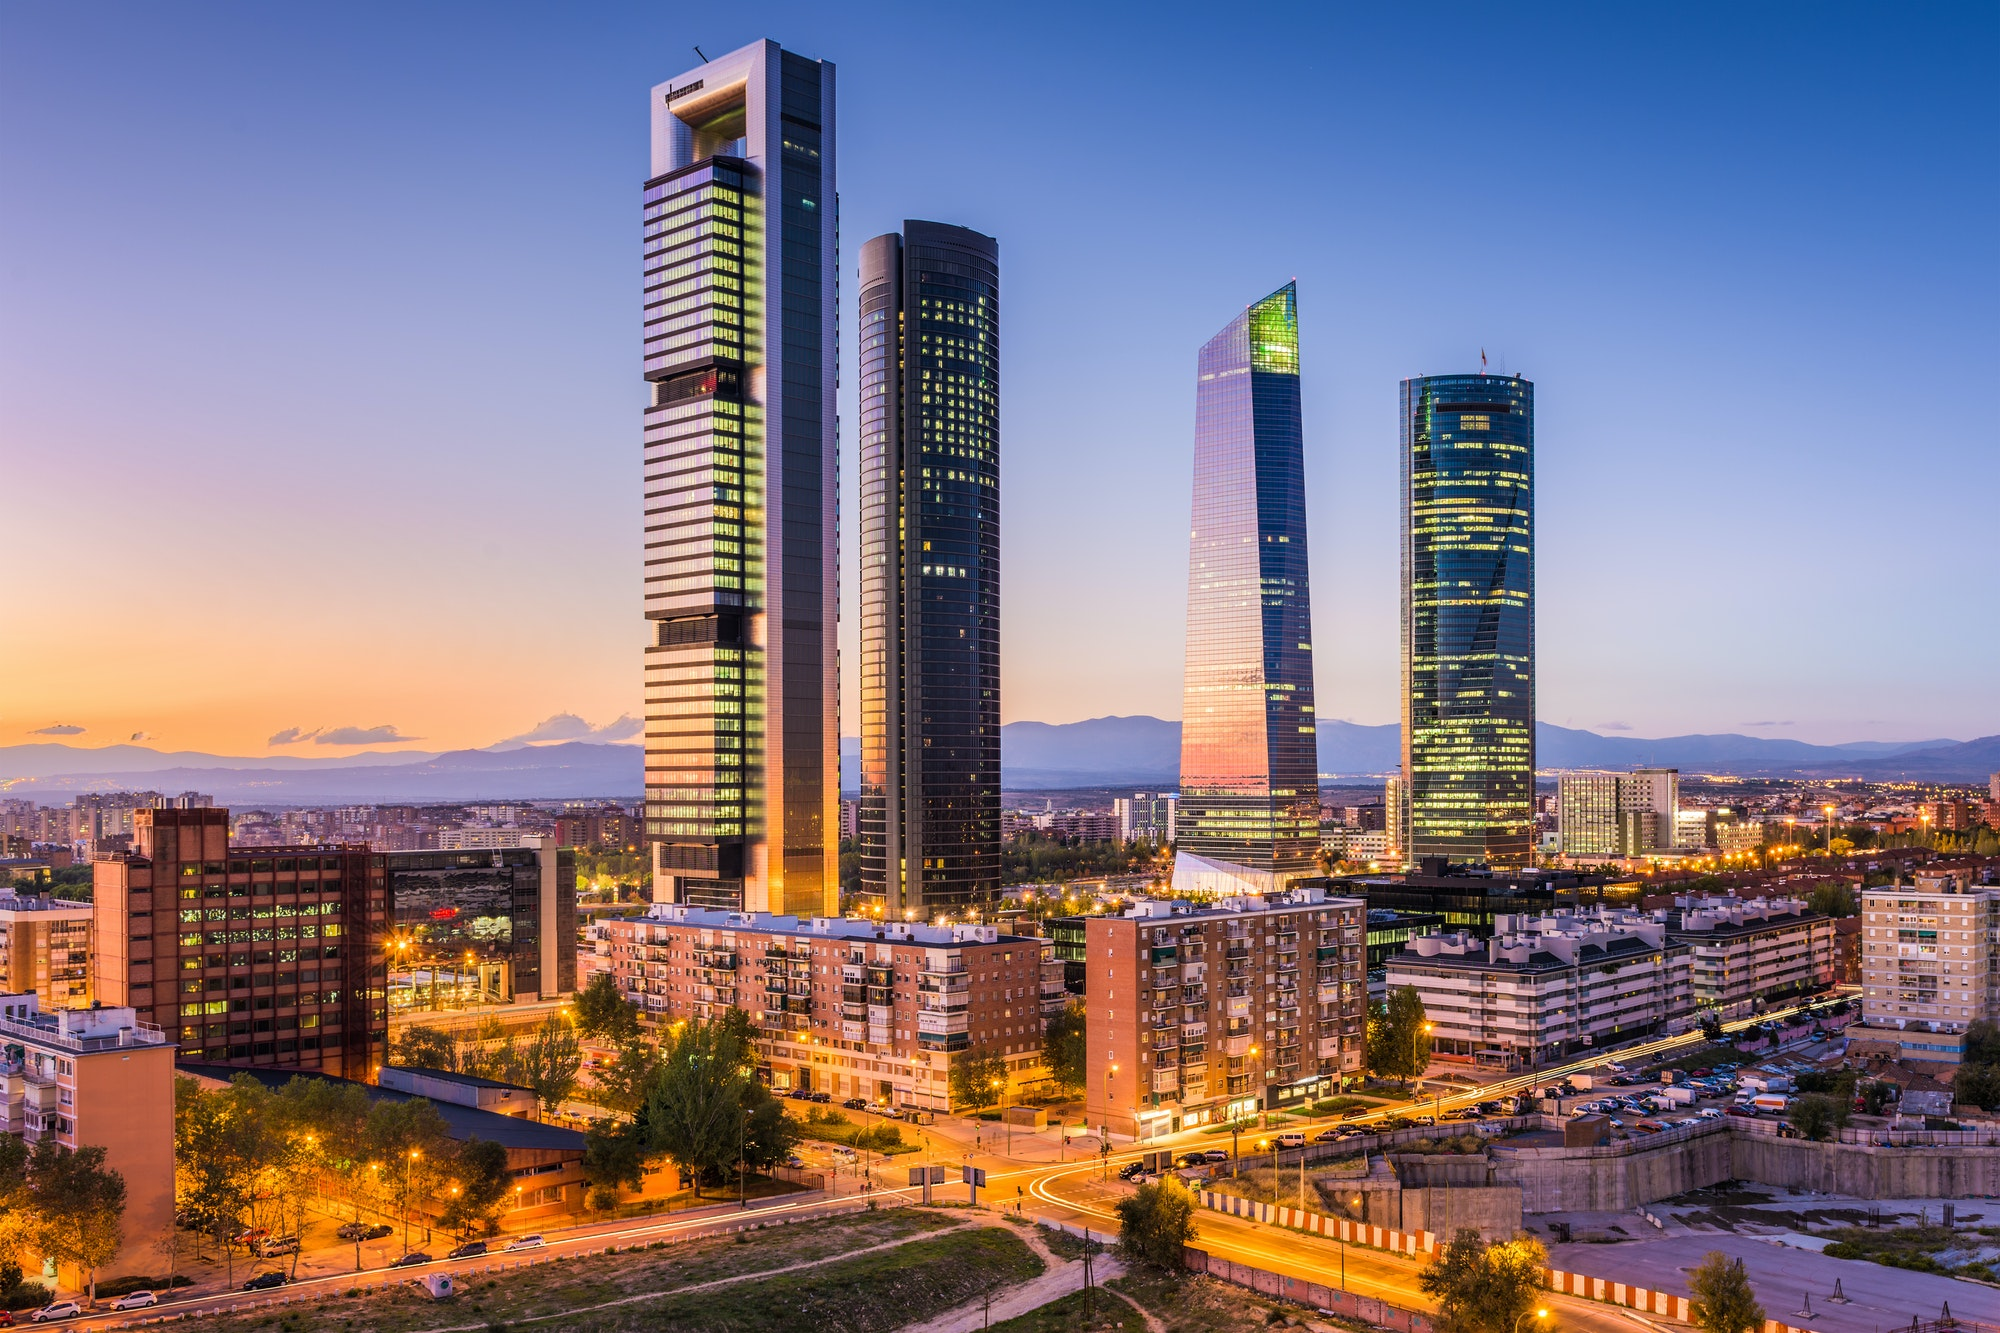 Madrid is the most expensive community for housing